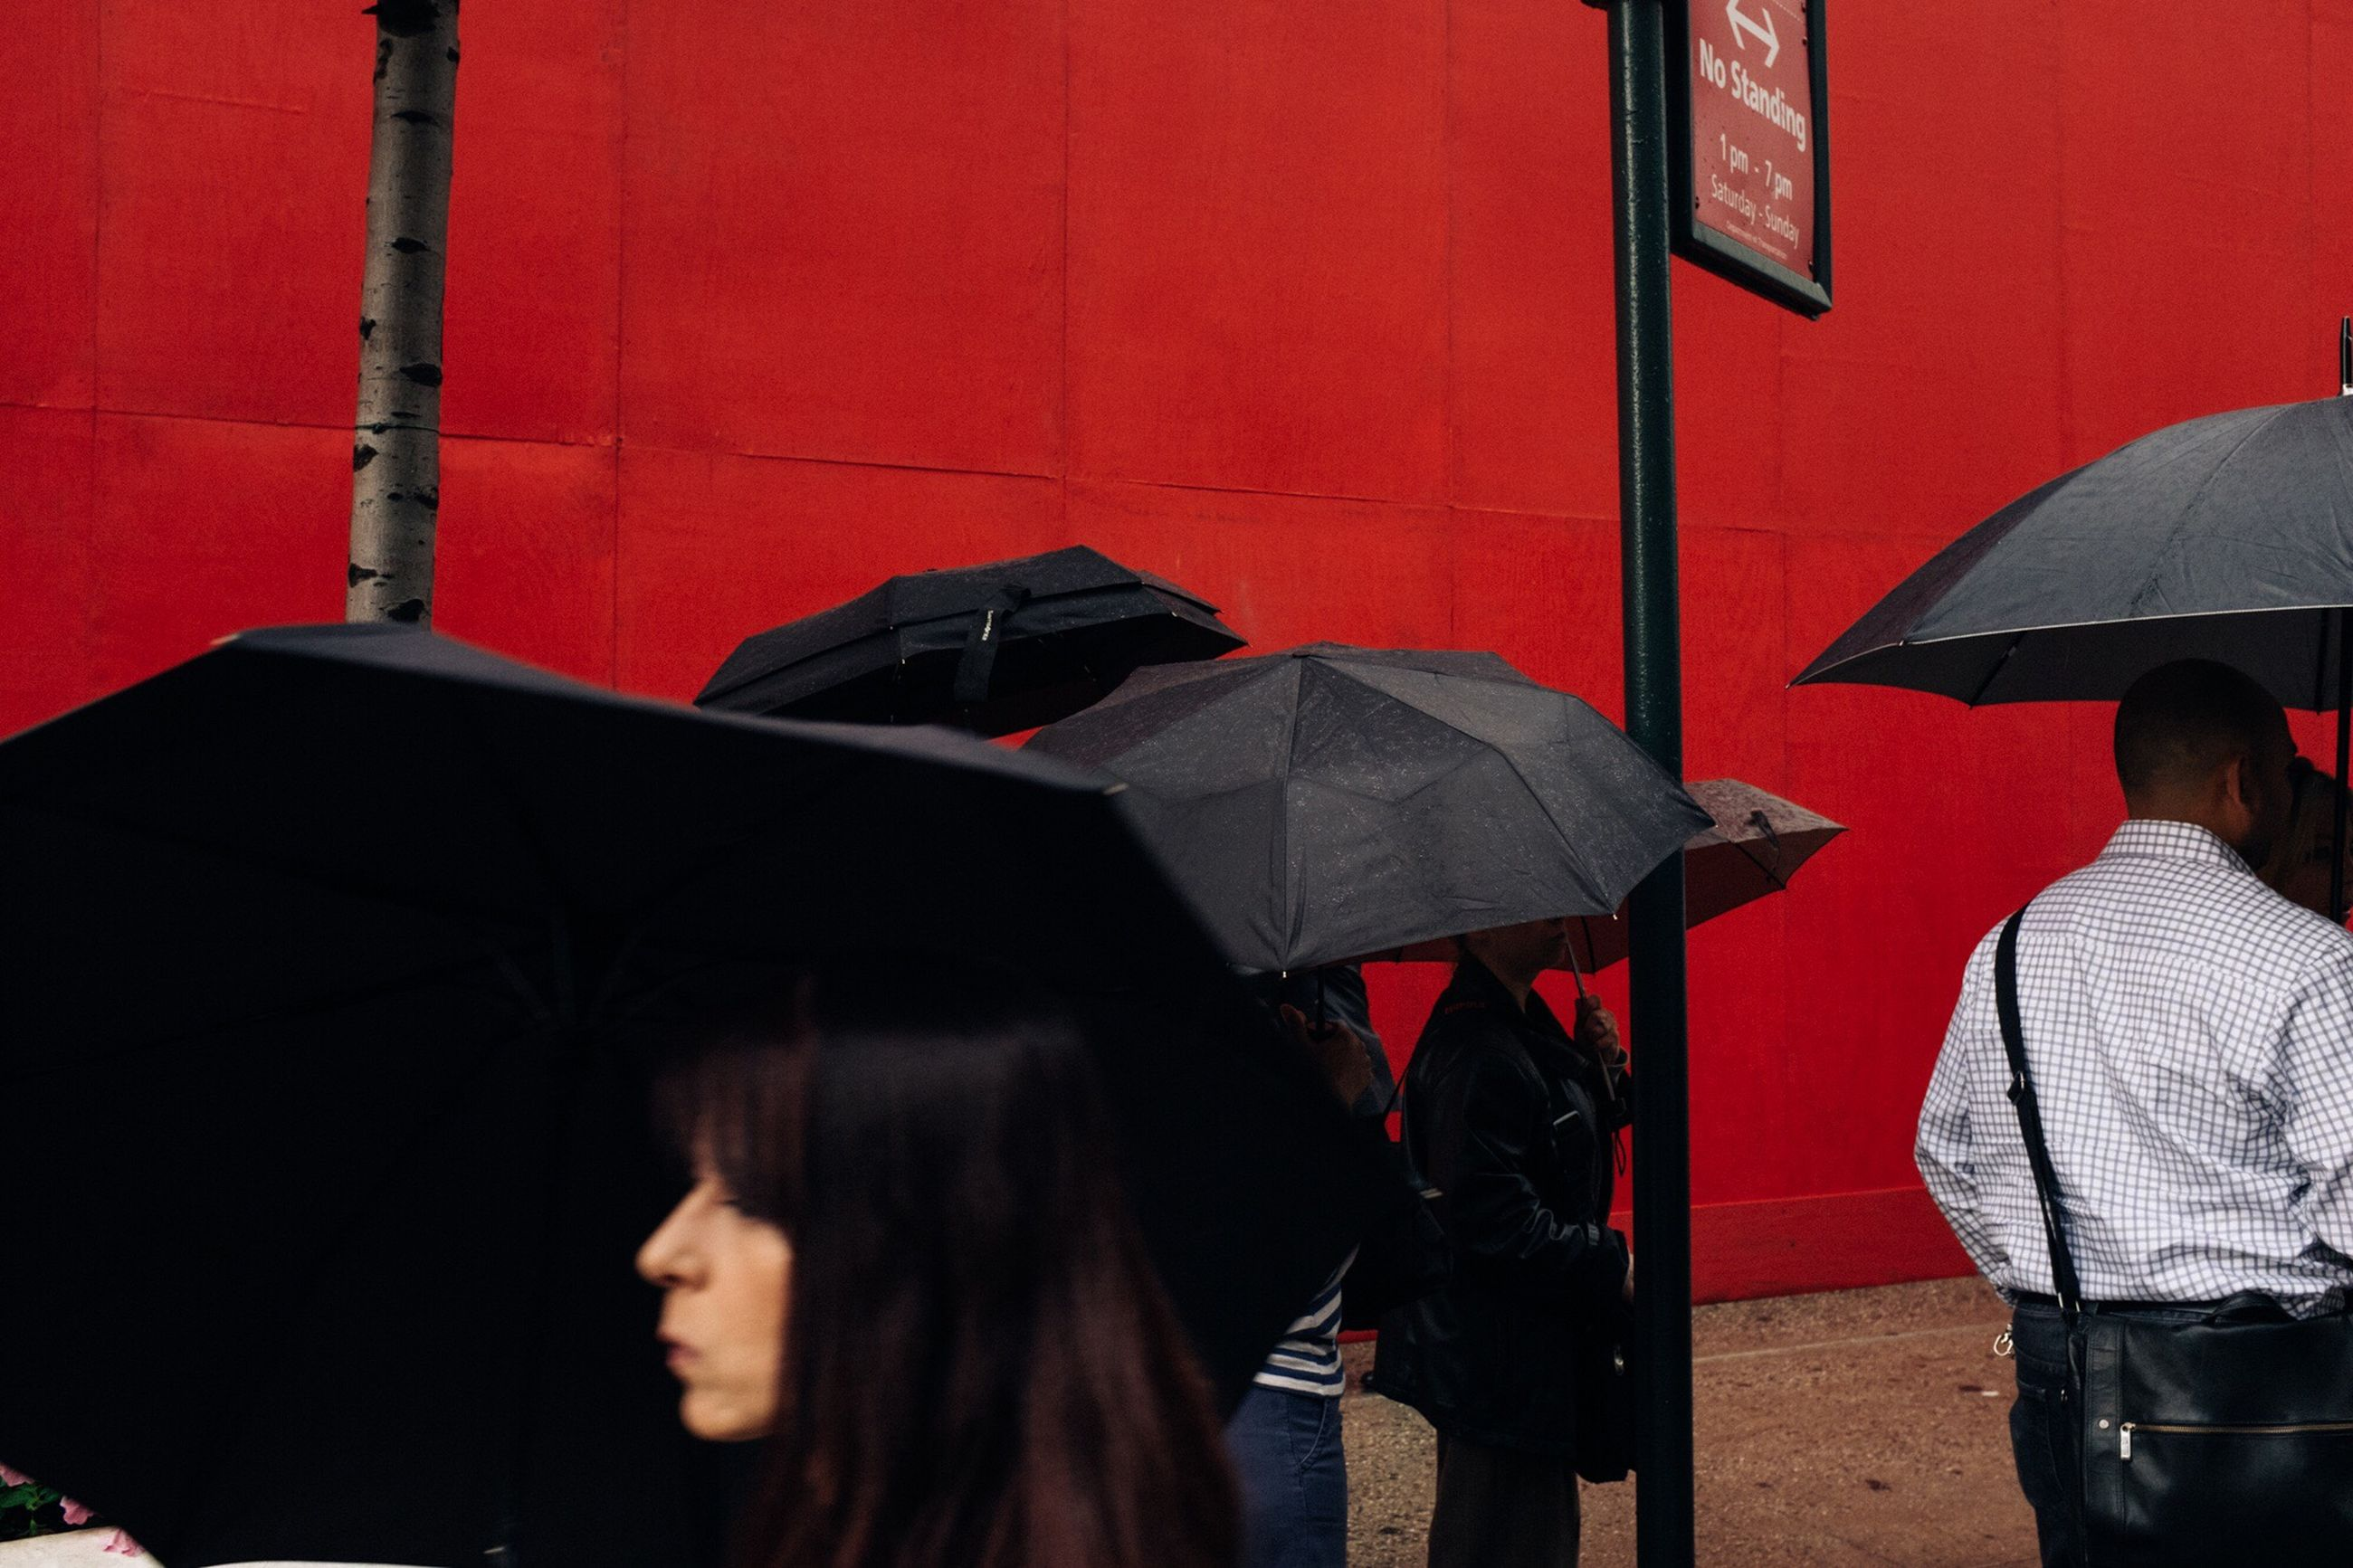 umbrella, rain, protection, weather, real people, wet, waiting, under, below, holding, red, outdoors, lifestyles, women, city, day